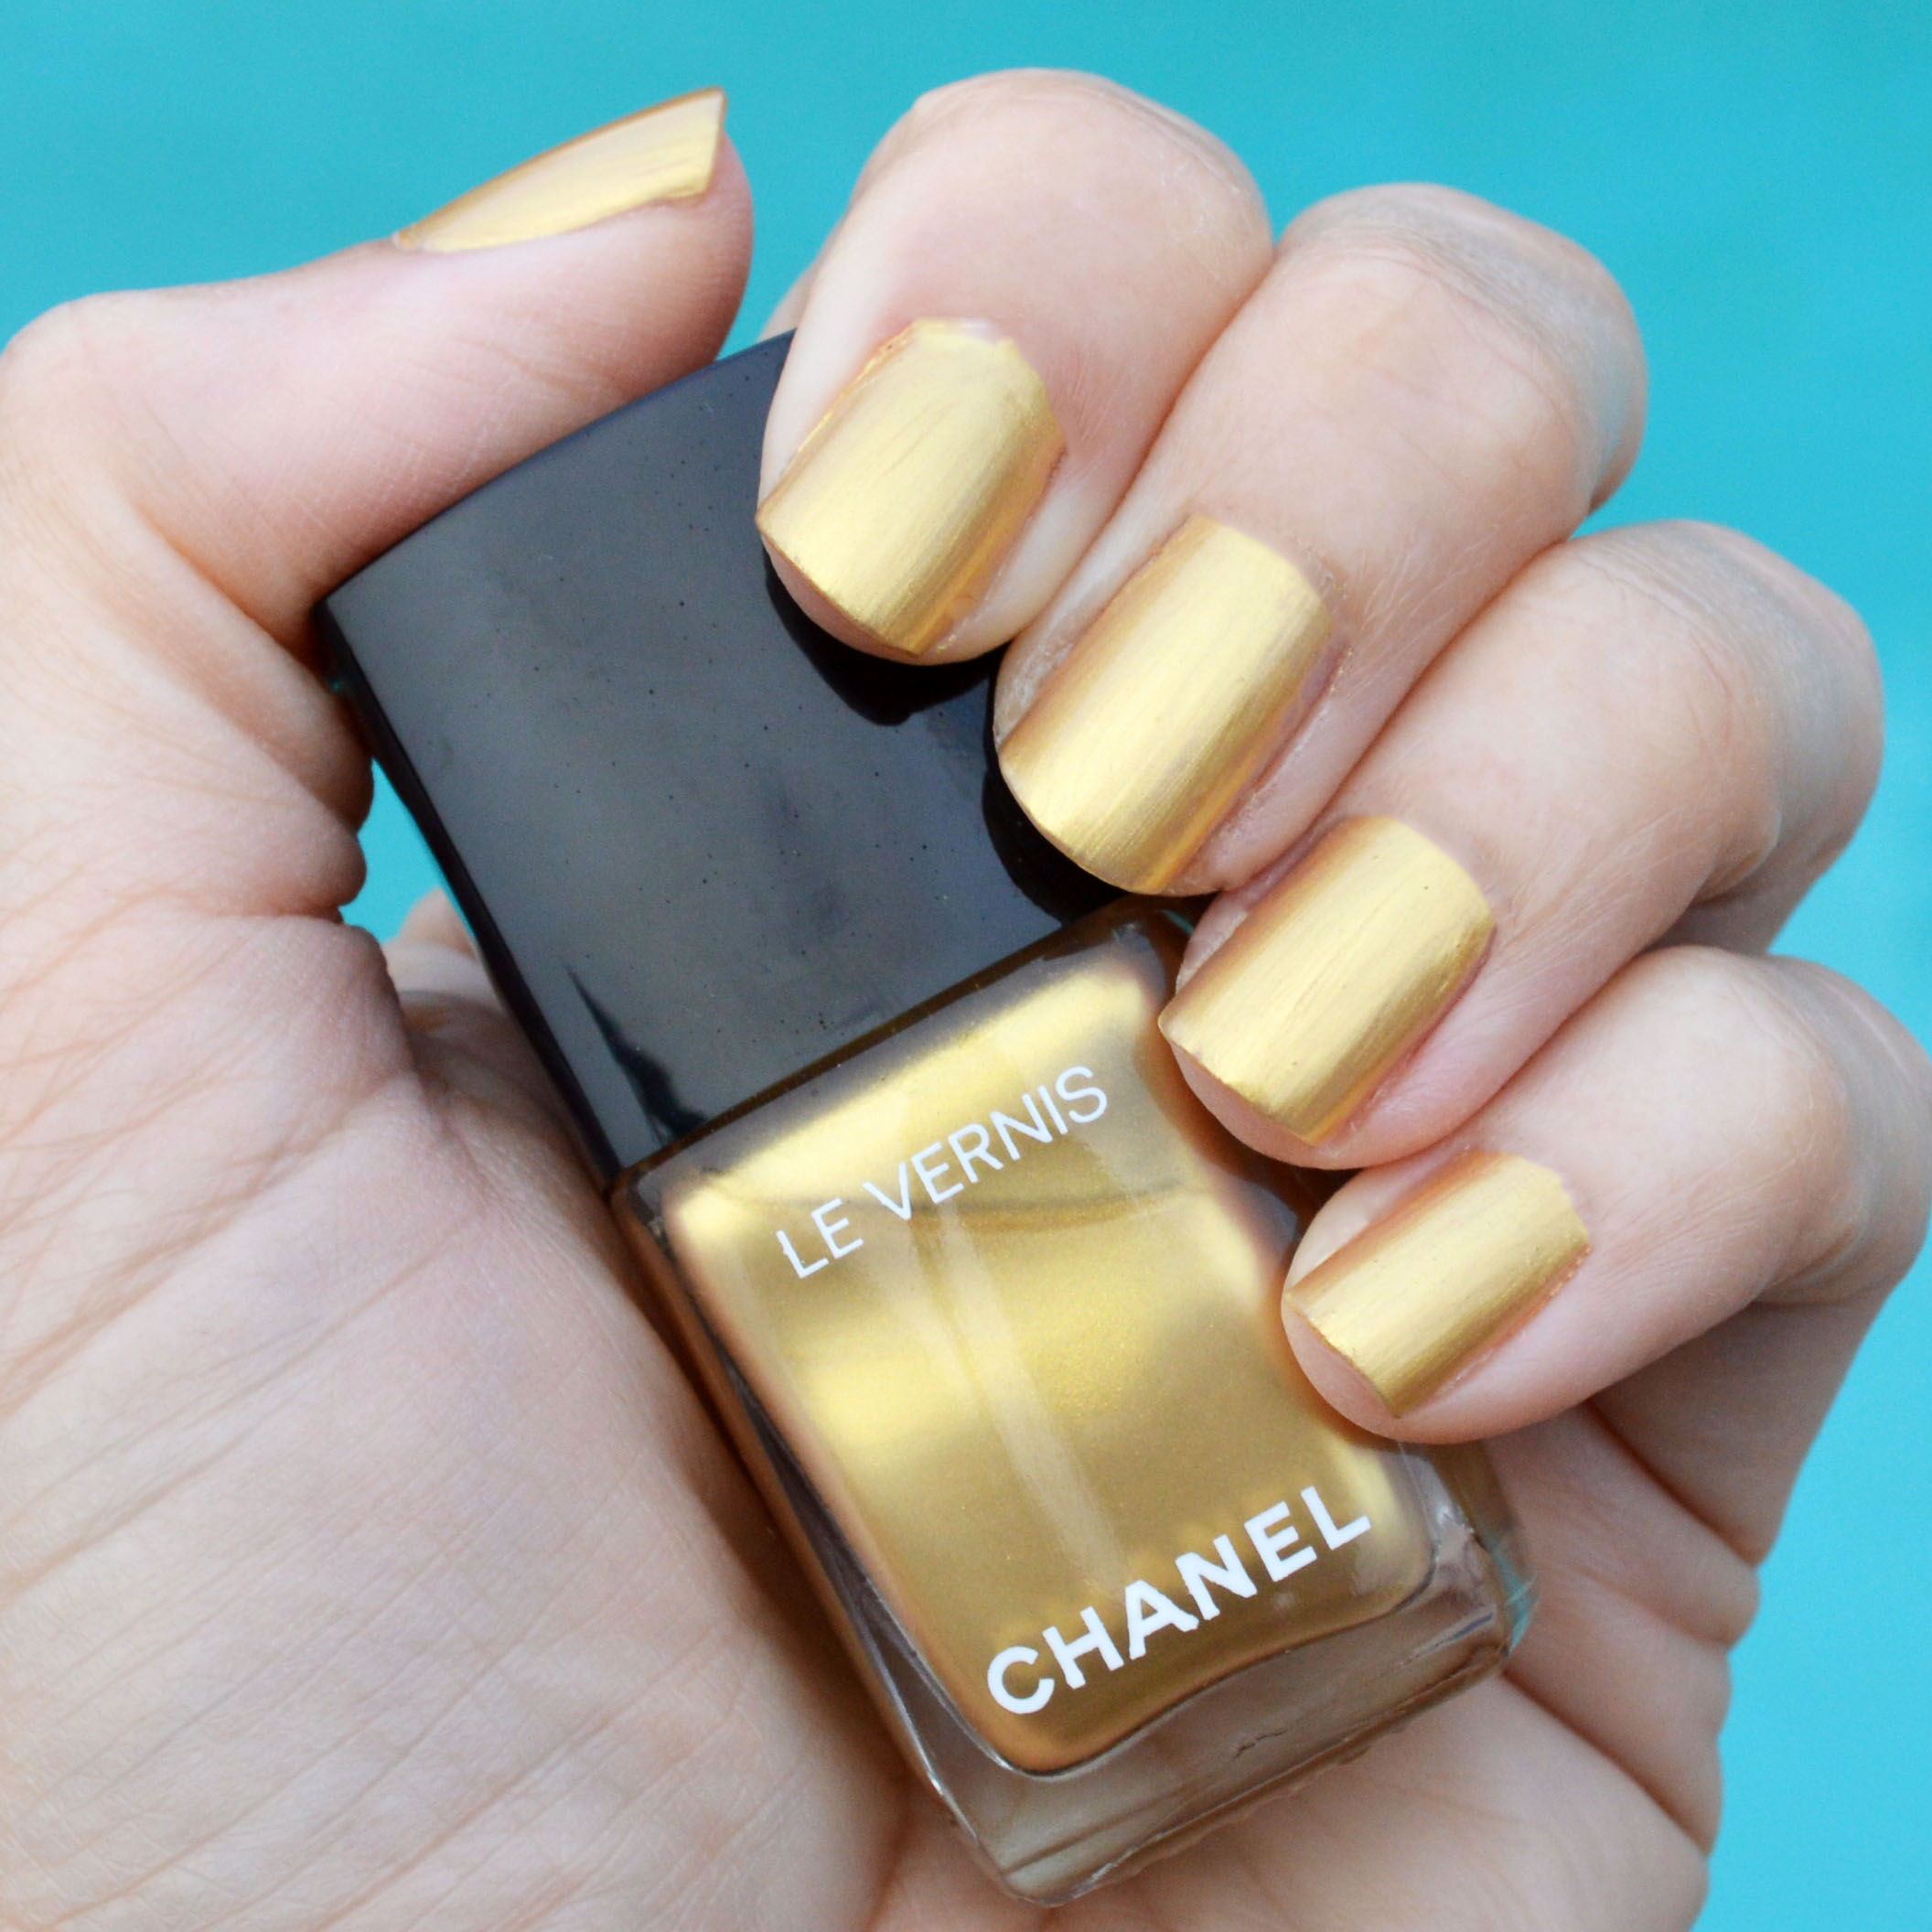 Chanel Chaine Or nail polish review – Bay Area Fashionista